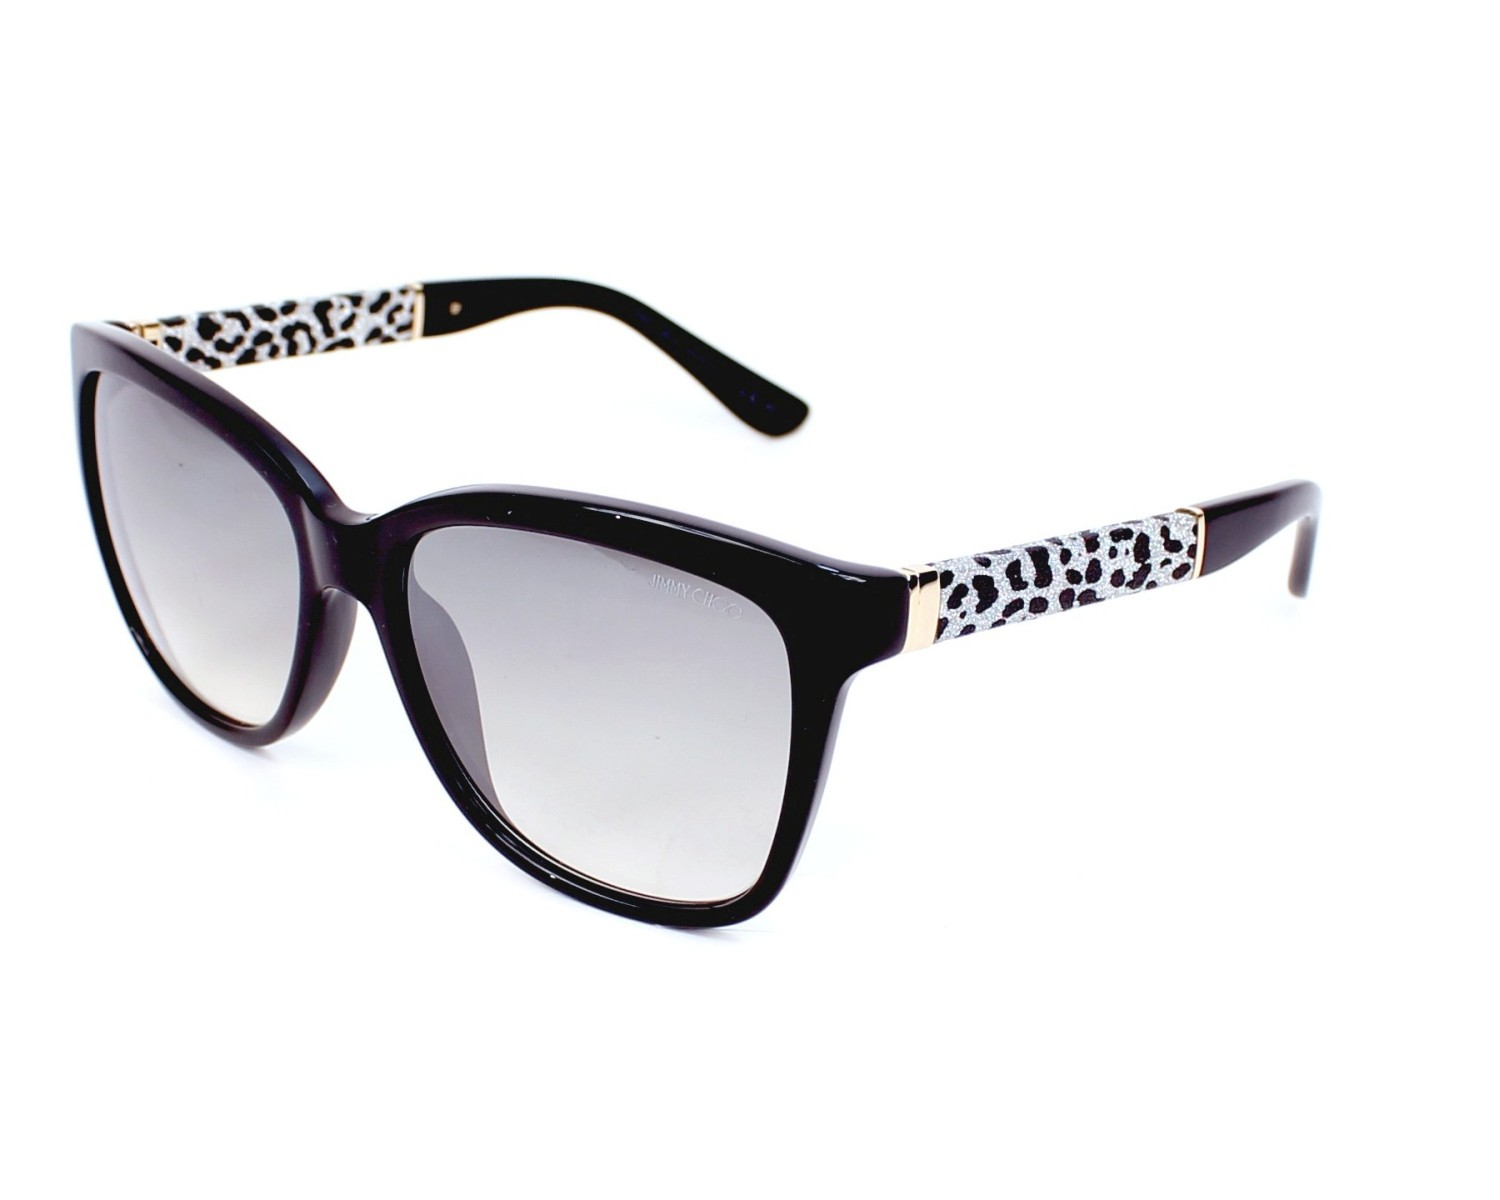 c4b79a0d2c84d thumbnail Sunglasses Jimmy Choo CORA-S FA3 IC - Black Leo profile view